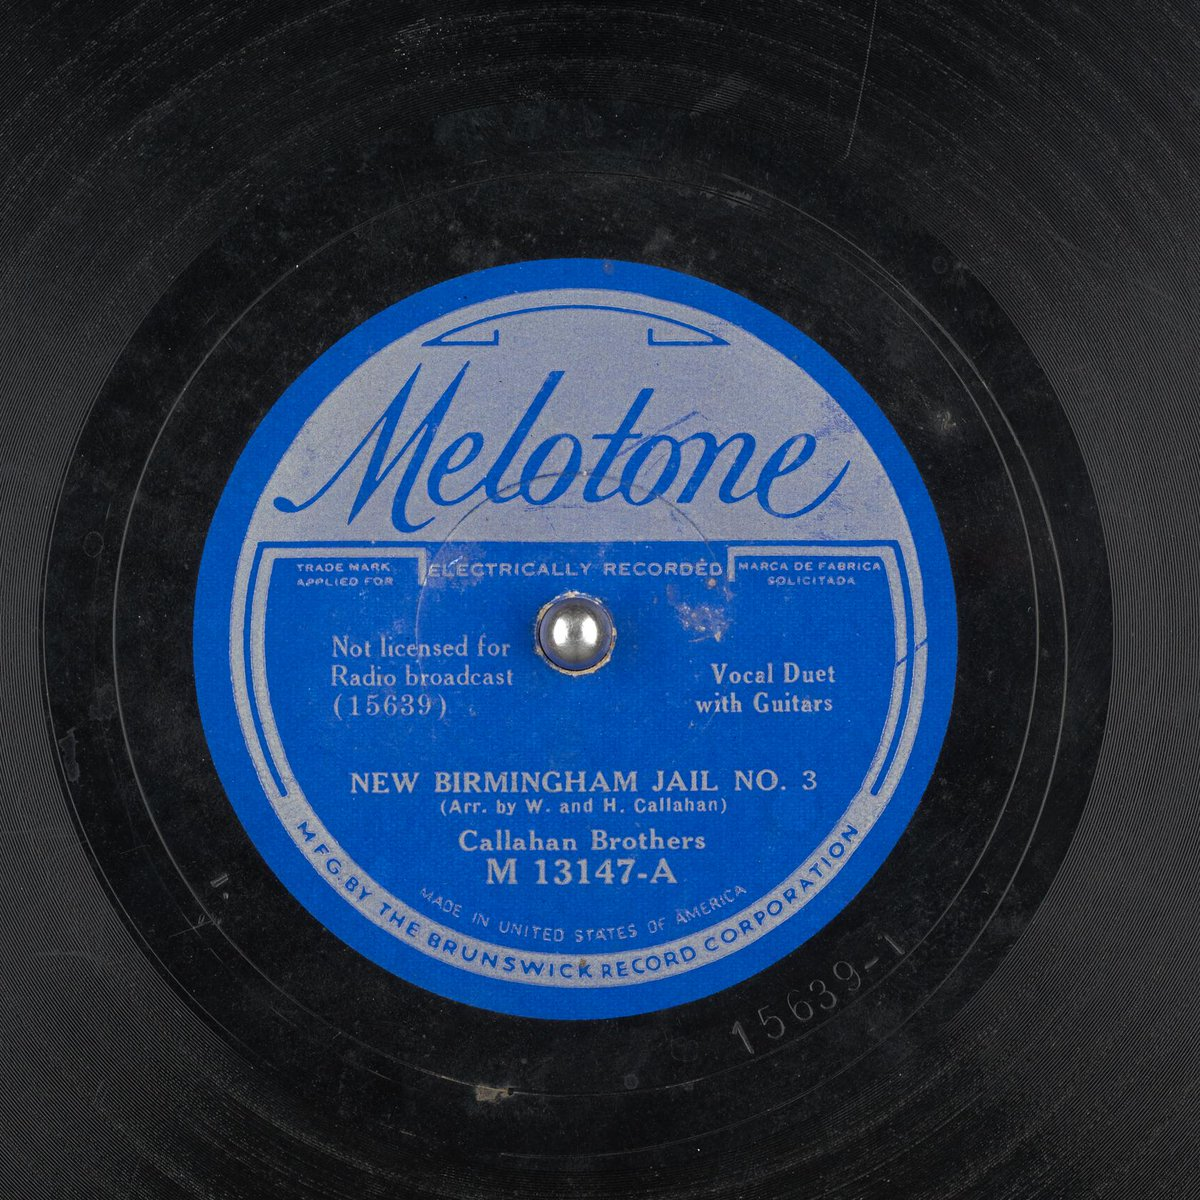 Today&#39;s #Alabama 78 Record: &quot;New #Birmingham Jail no.3&quot; by the Callahan Brothers Recorded Aug 16, 1934  http:// tinyurl.com/y9s7j6vb  &nbsp;    #bham #bhm <br>http://pic.twitter.com/dyEH8hSfgB